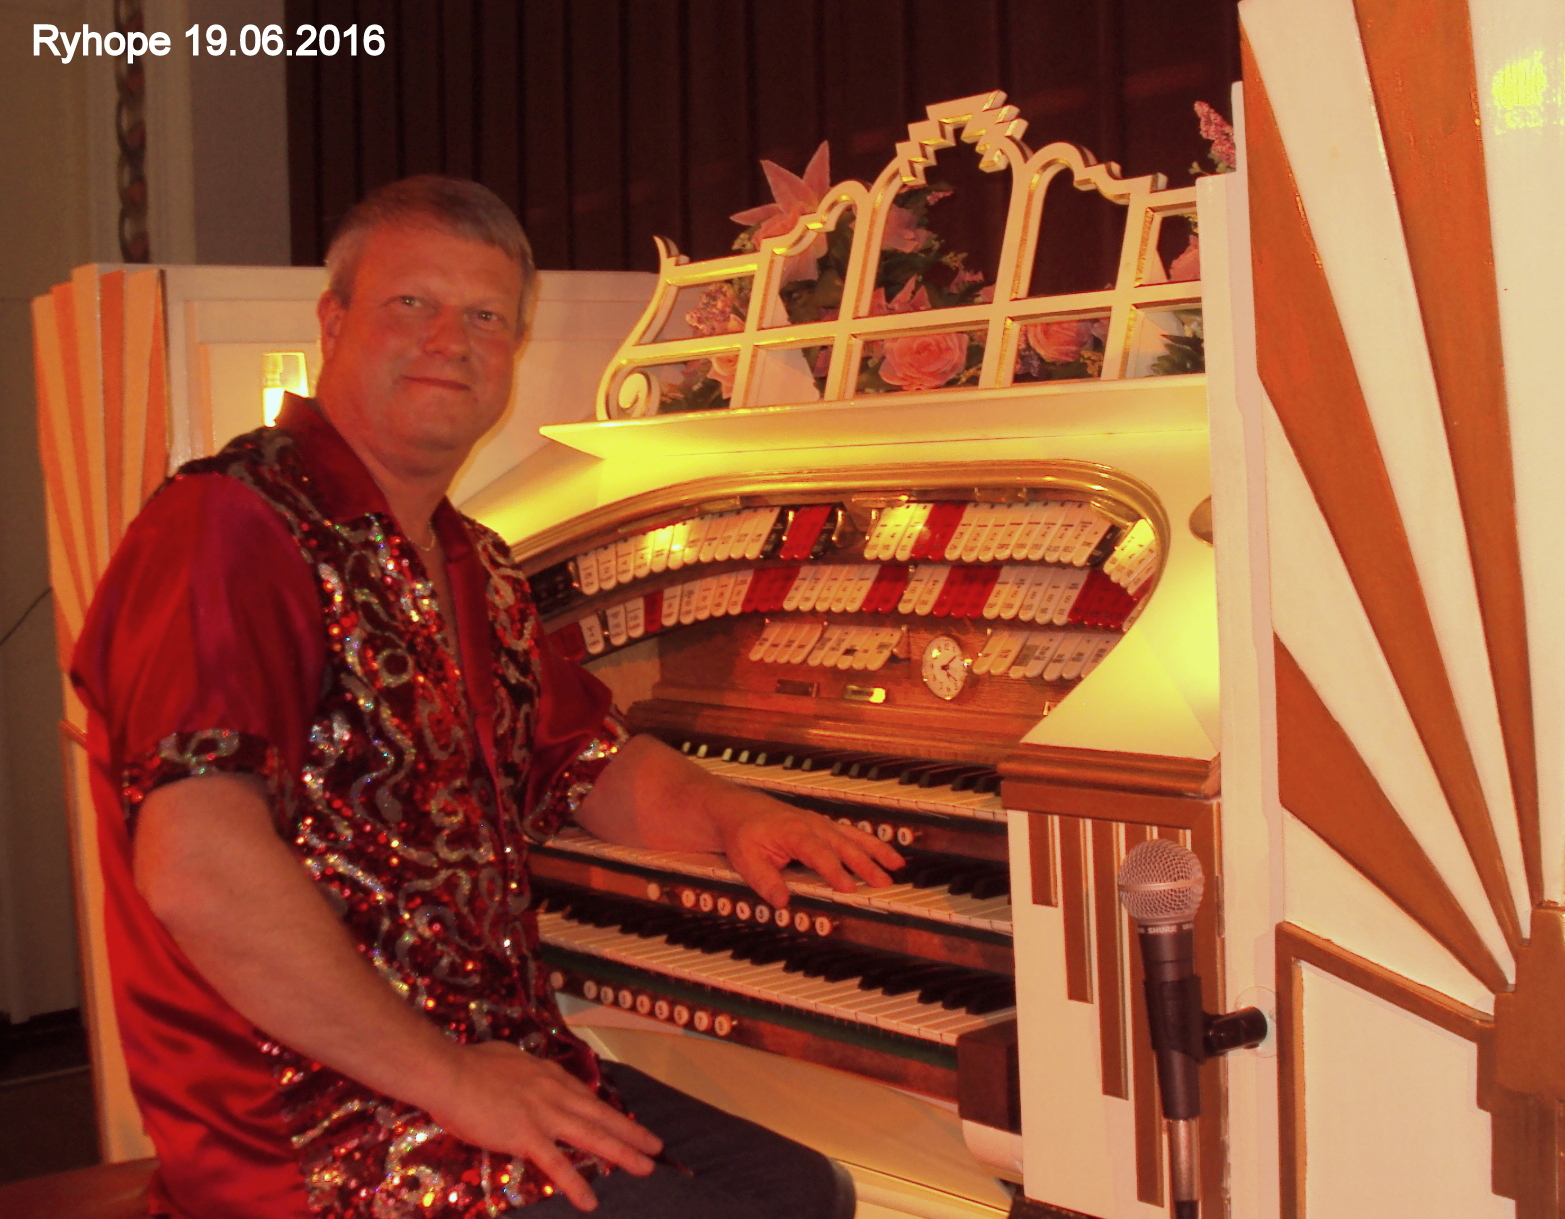 Sunderland theatre organ preservation society